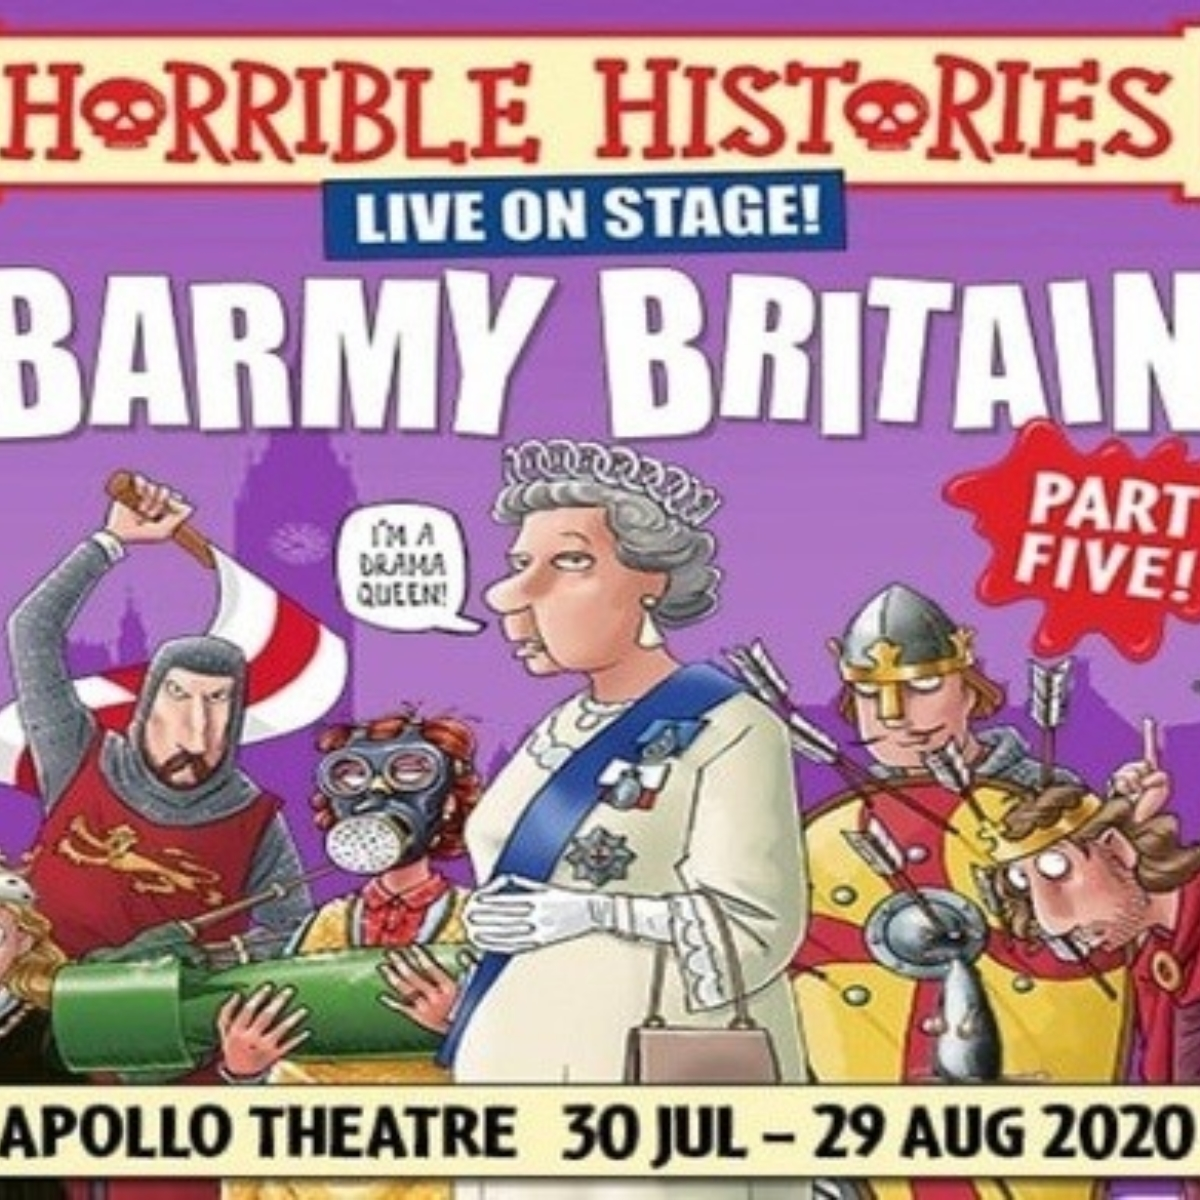 Horrible Histories: Barmy Britain Pt 5 Images